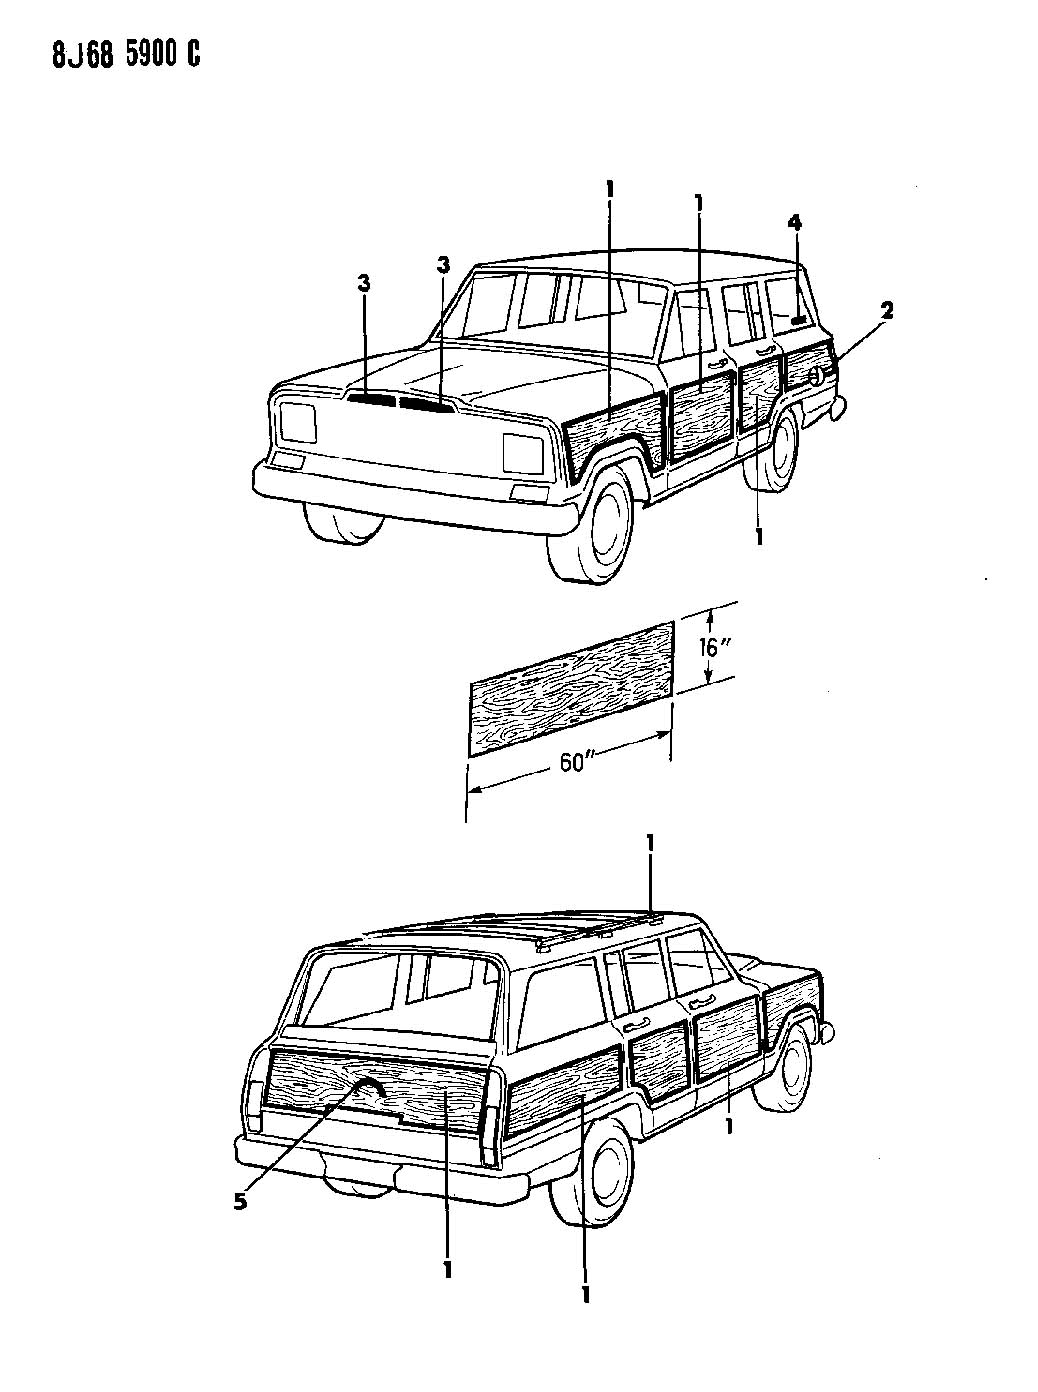 1988 jeep grand wagoneer body parts